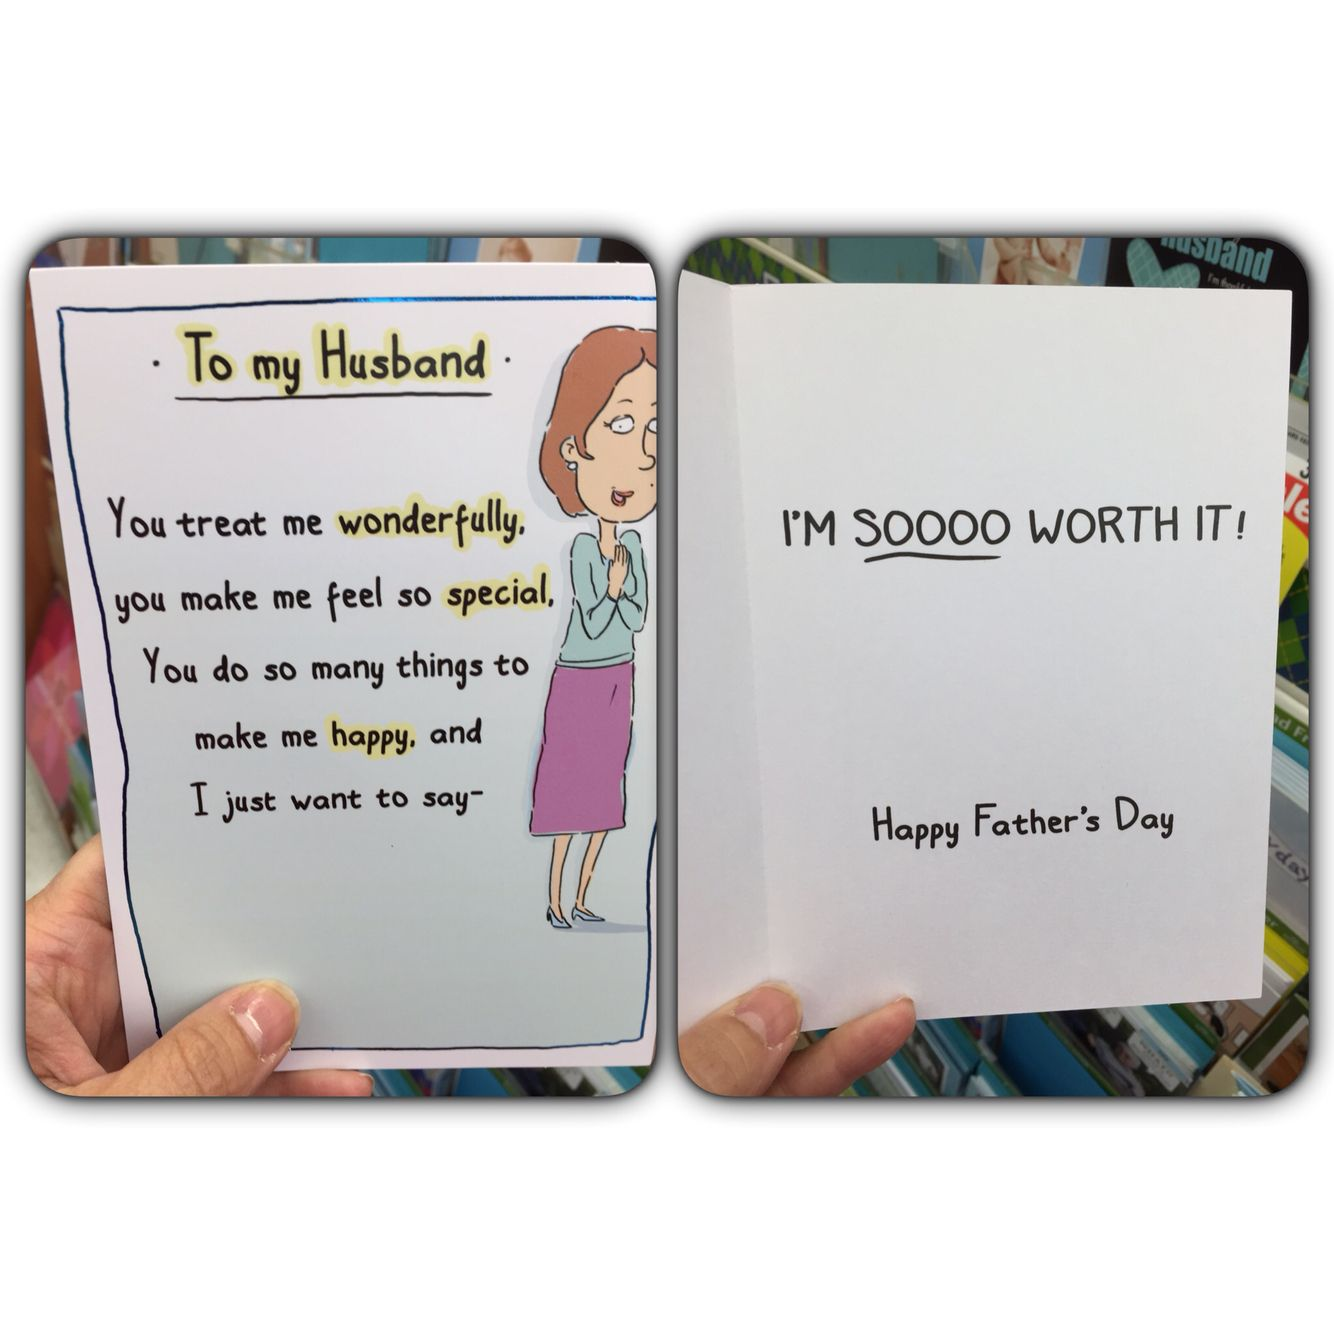 Fathers Day Card From Wife To Husband Winning Thewinning